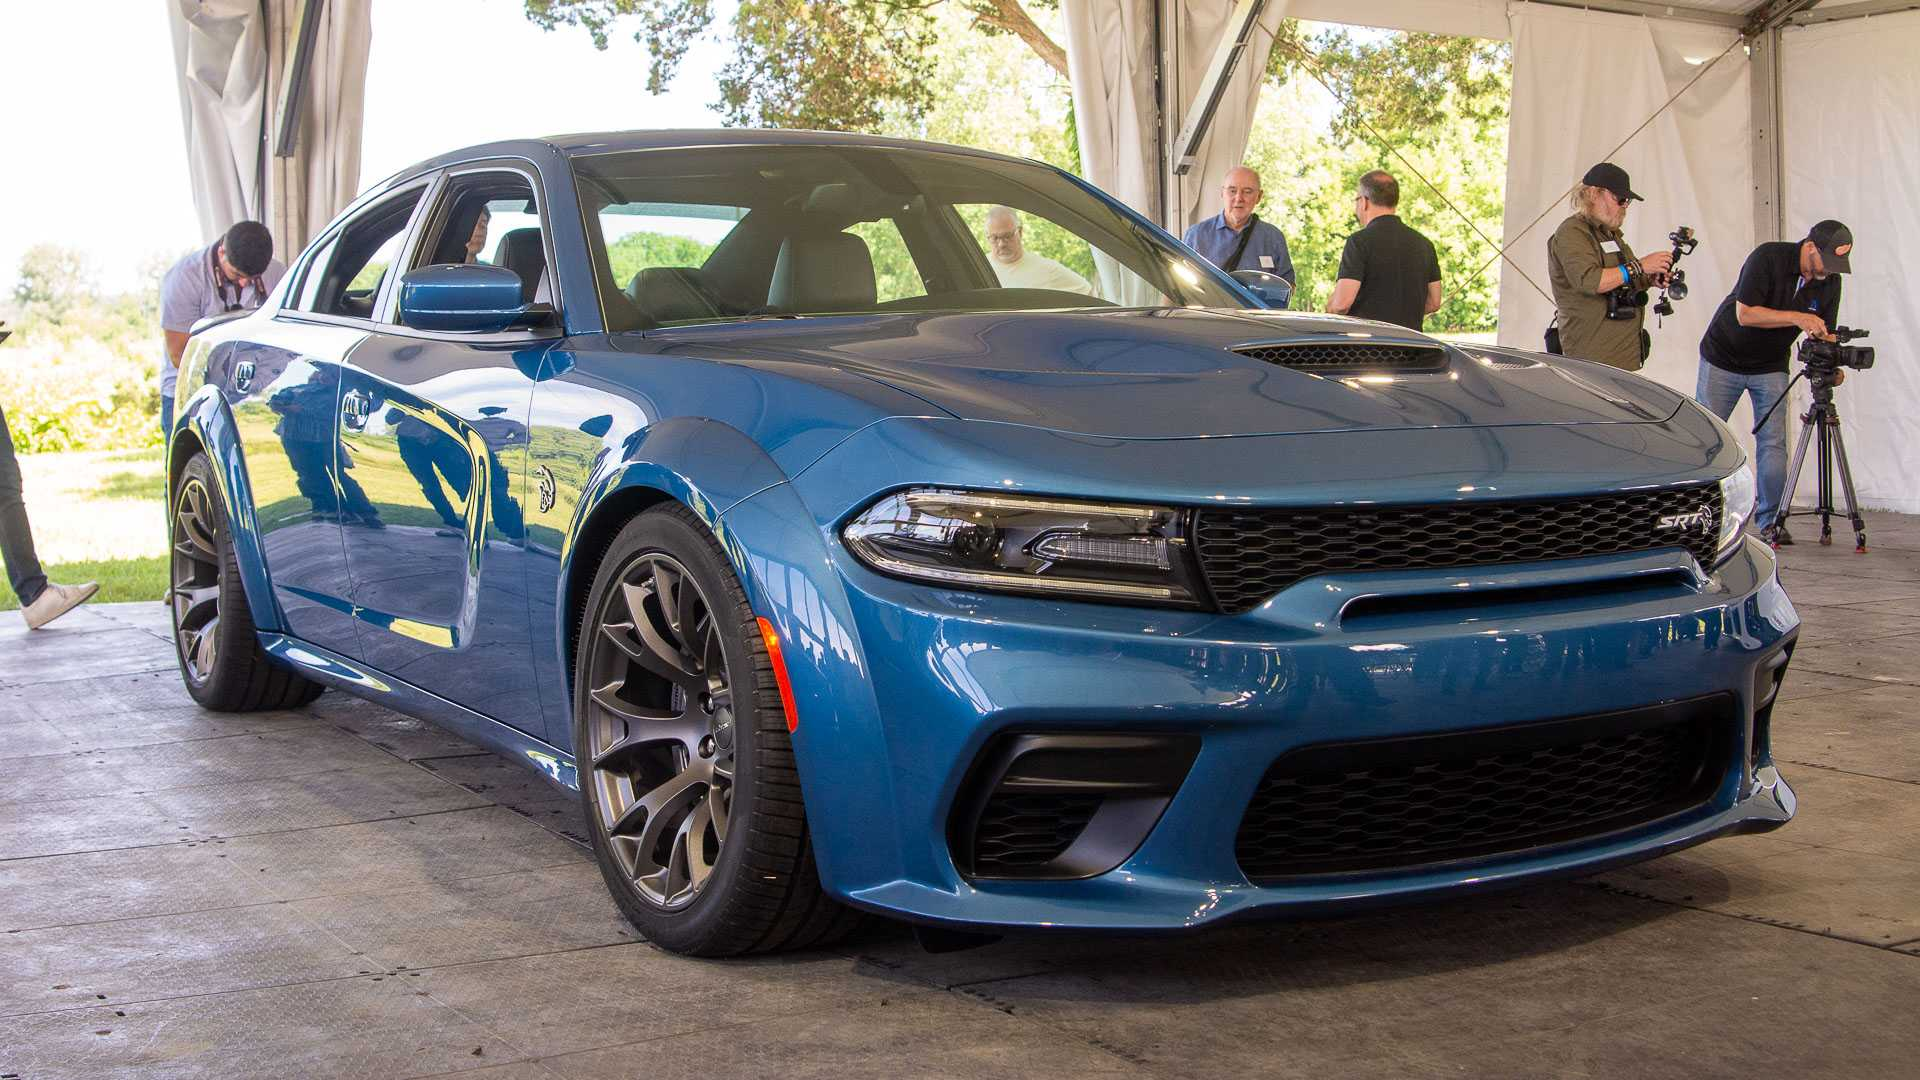 20 All New 2020 Dodge Charger Scat Pack Widebody Redesign